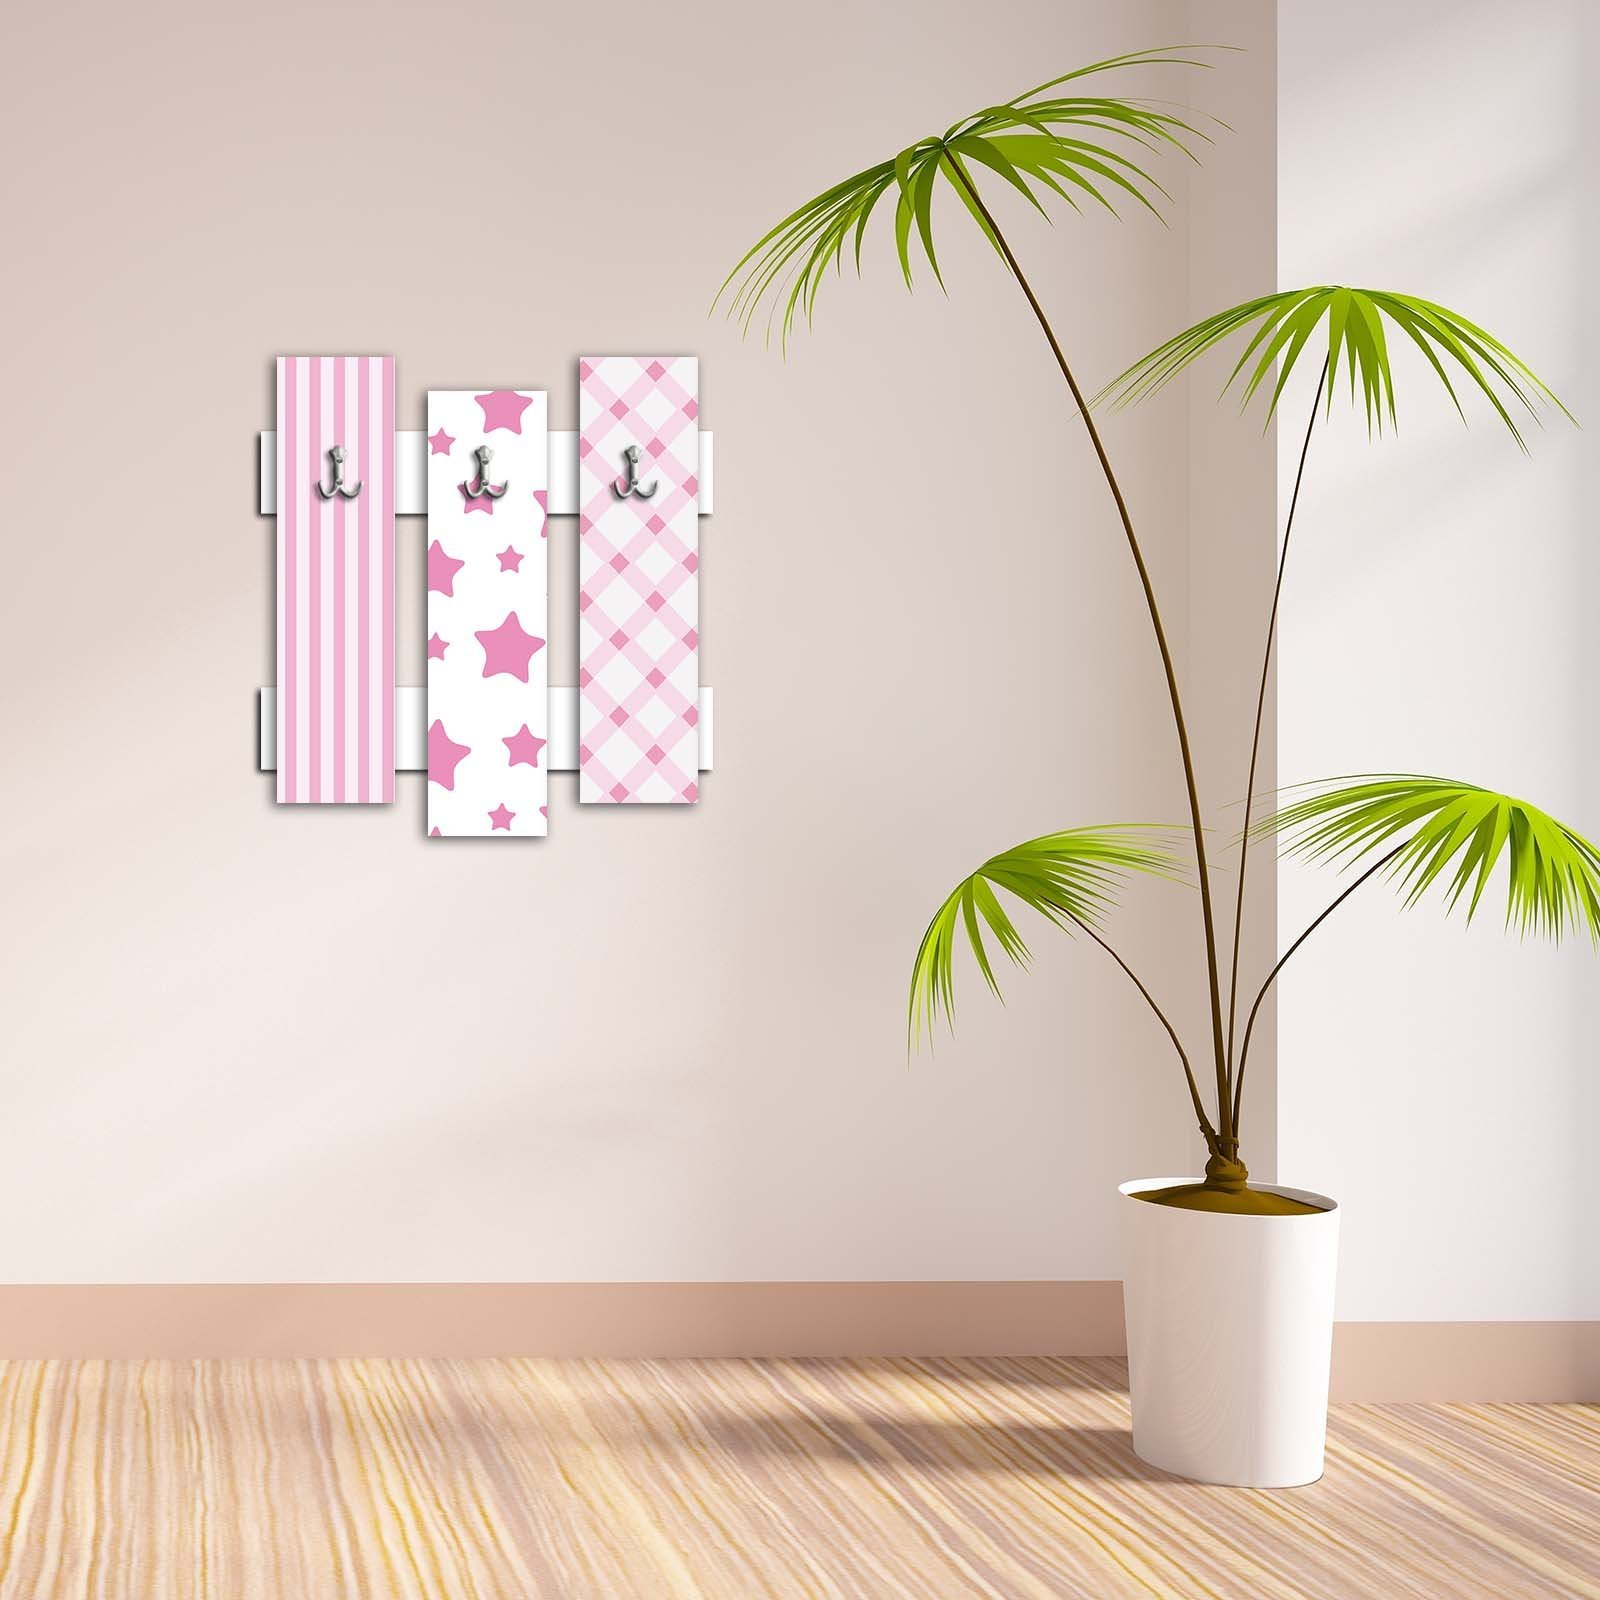 Decorative Wall Hook 3 Pcs Metal Key Holder 100% MDF Mounted Hanging Home Decor, Perfect for Foyers Entryway, Door Coats Hats Towels Scarfs Bags Star Pattern Design Sky Cloud Smiling Pink Plaid Square